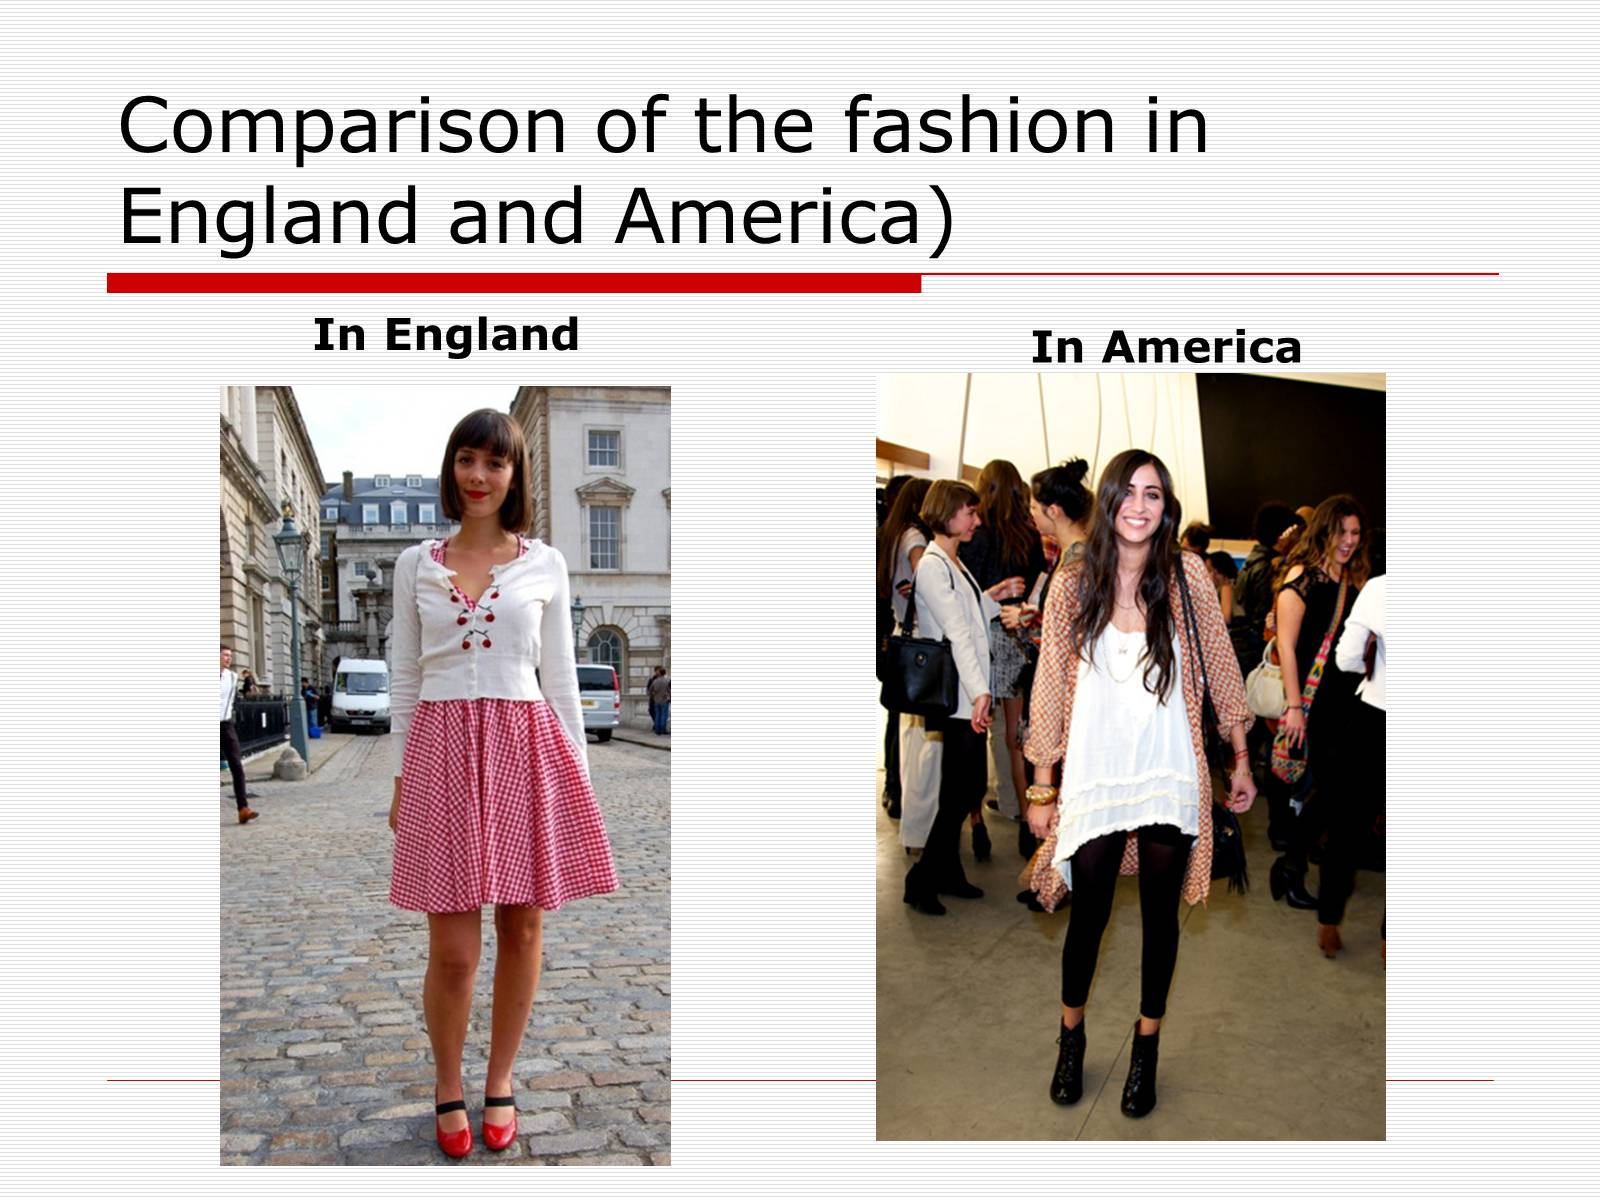 Презентація на тему «Comparison of the fashion in England and America» - Слайд #6